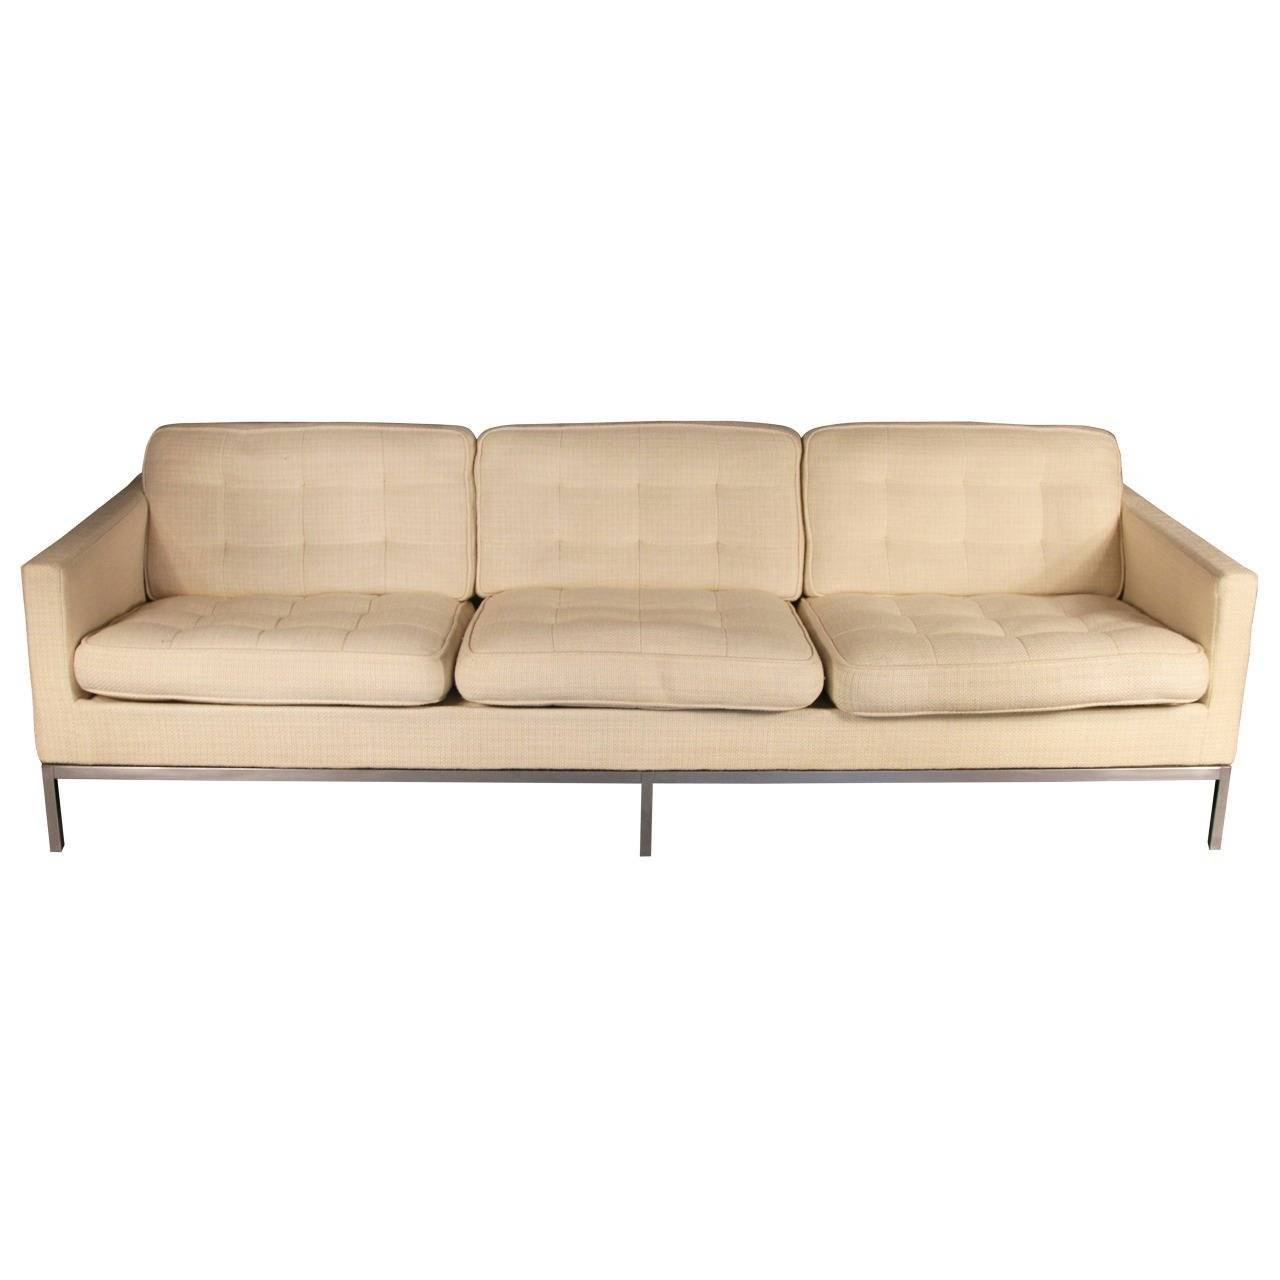 Florence Knoll Sofa Three-Seat Sofa, Model 26, Pair Available For with regard to Florence Knoll 3 Seater Sofas (Image 21 of 30)